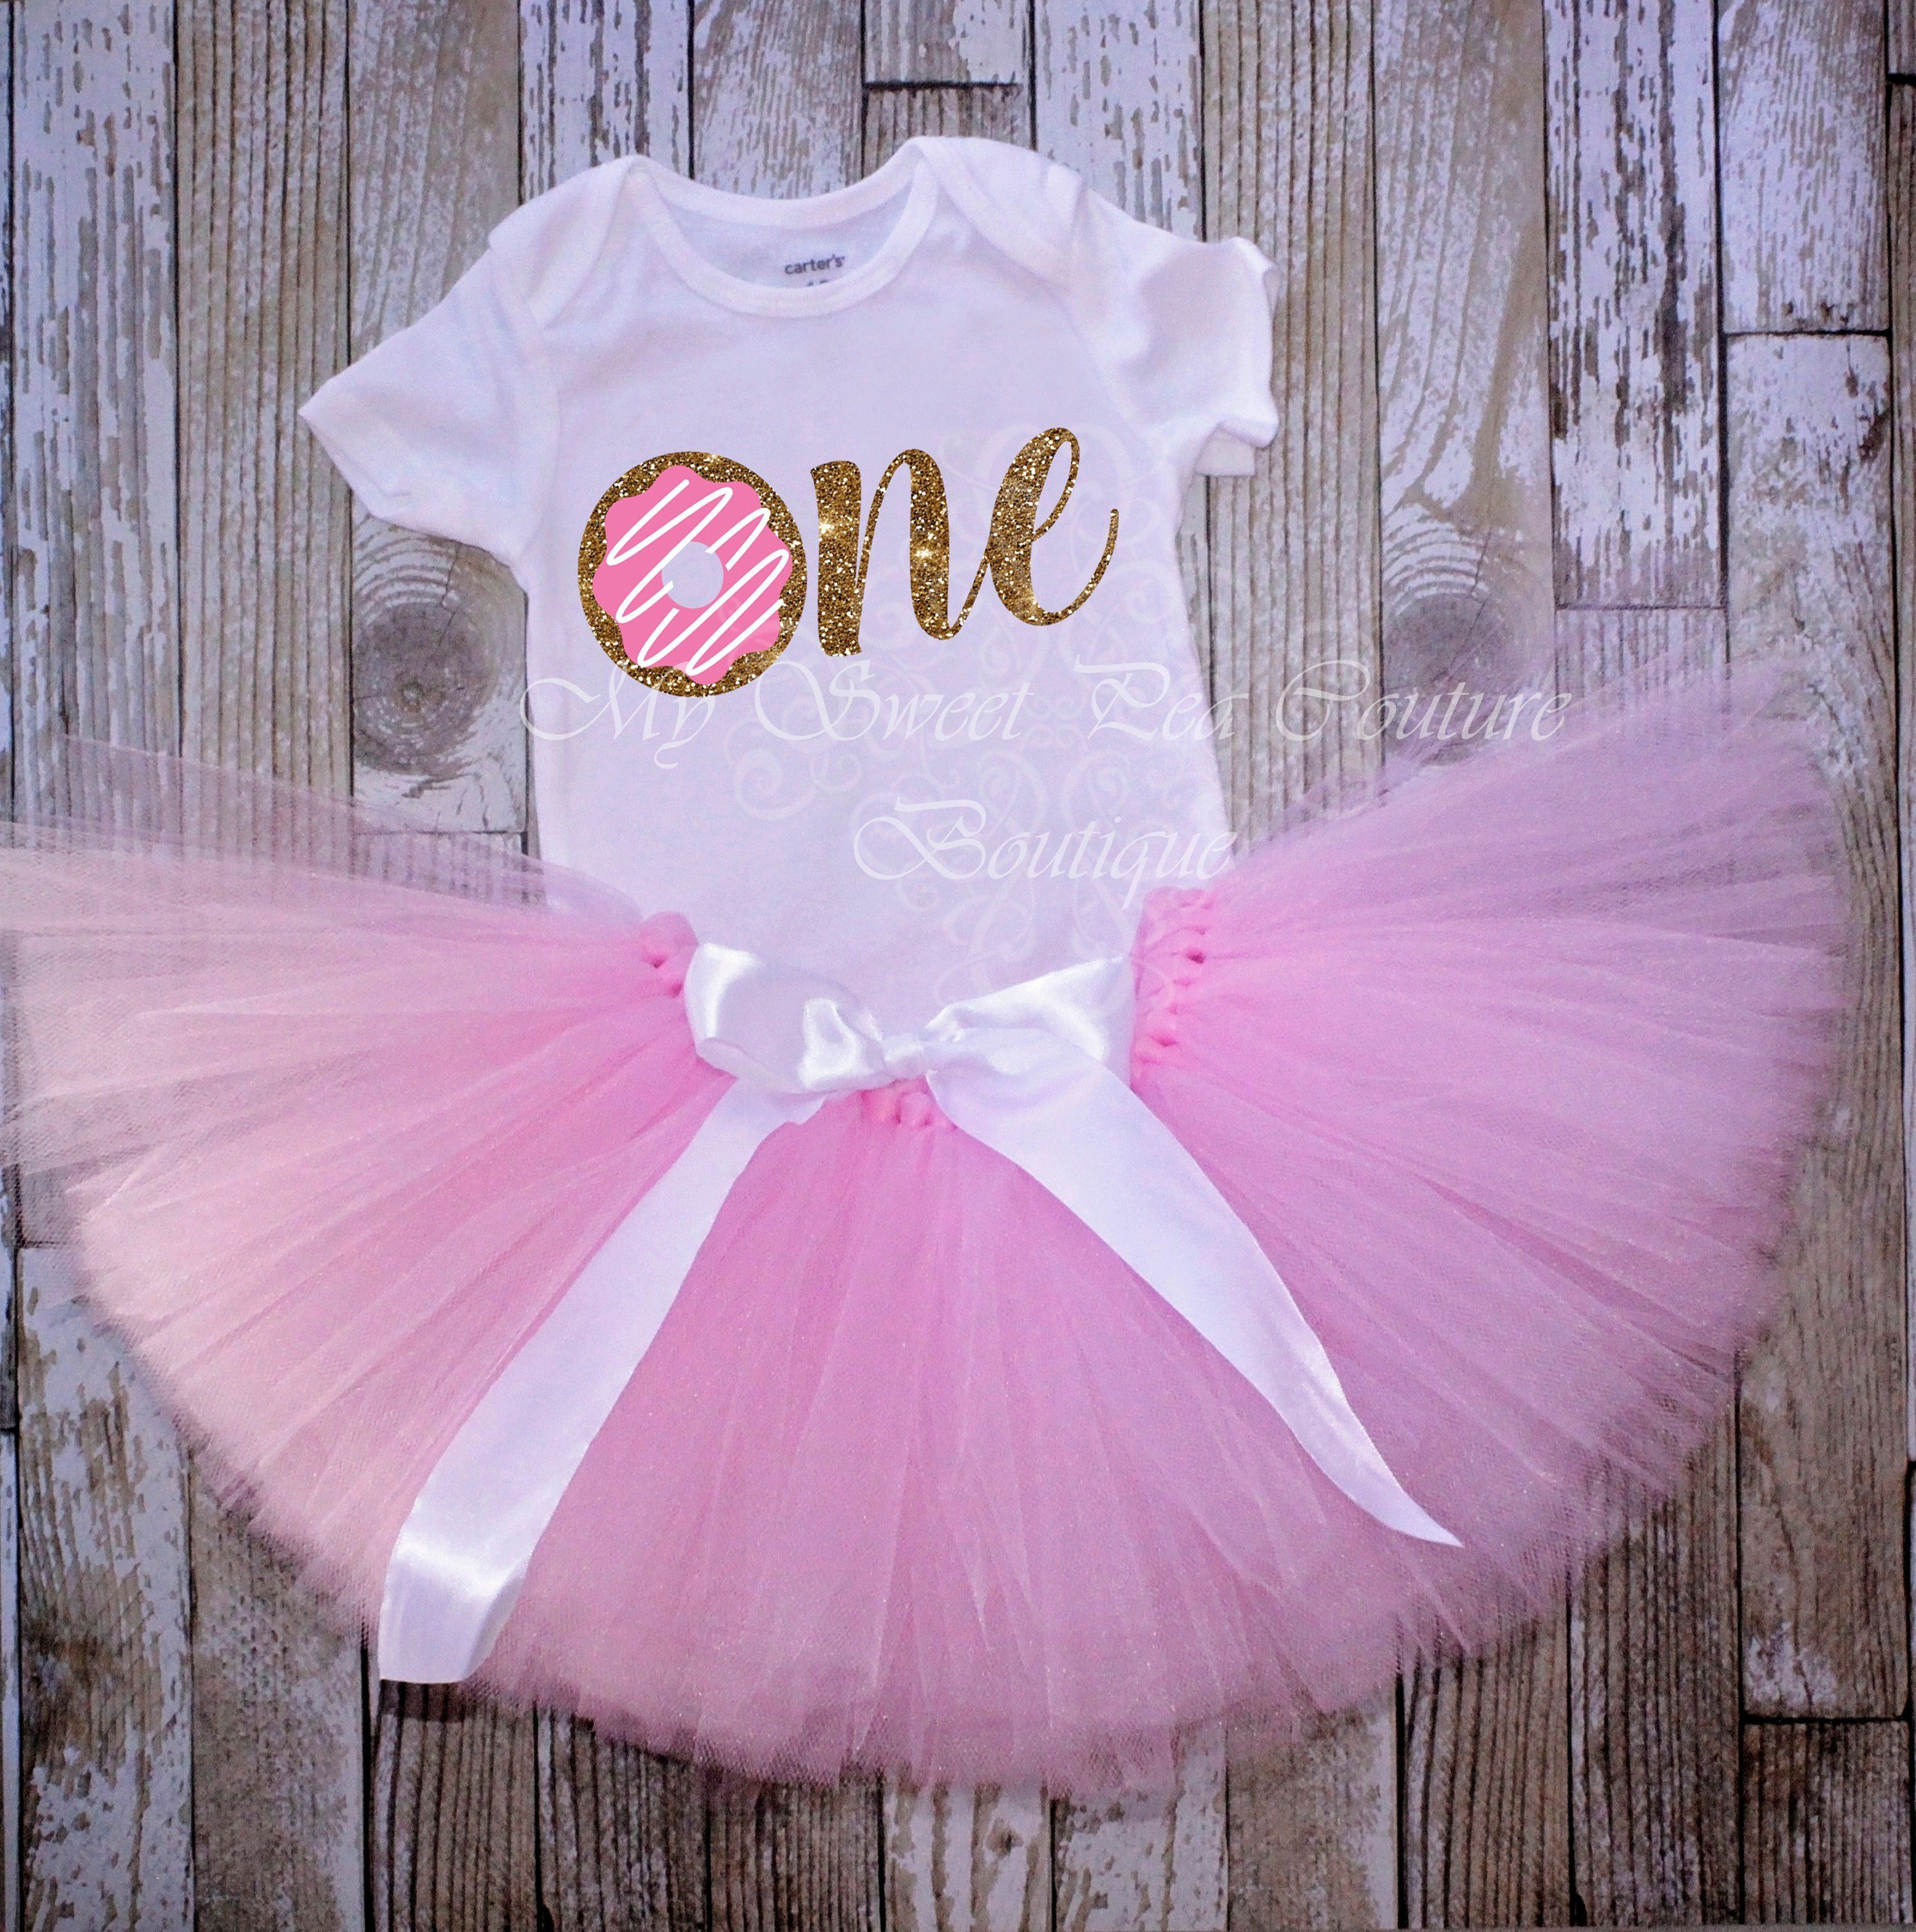 Donut First Birthday Outfit  FREE SHIPPING Sweet One Birthday Shirt Donut Birthday Pink 1st Birthday Dress Cake Smash Outfit